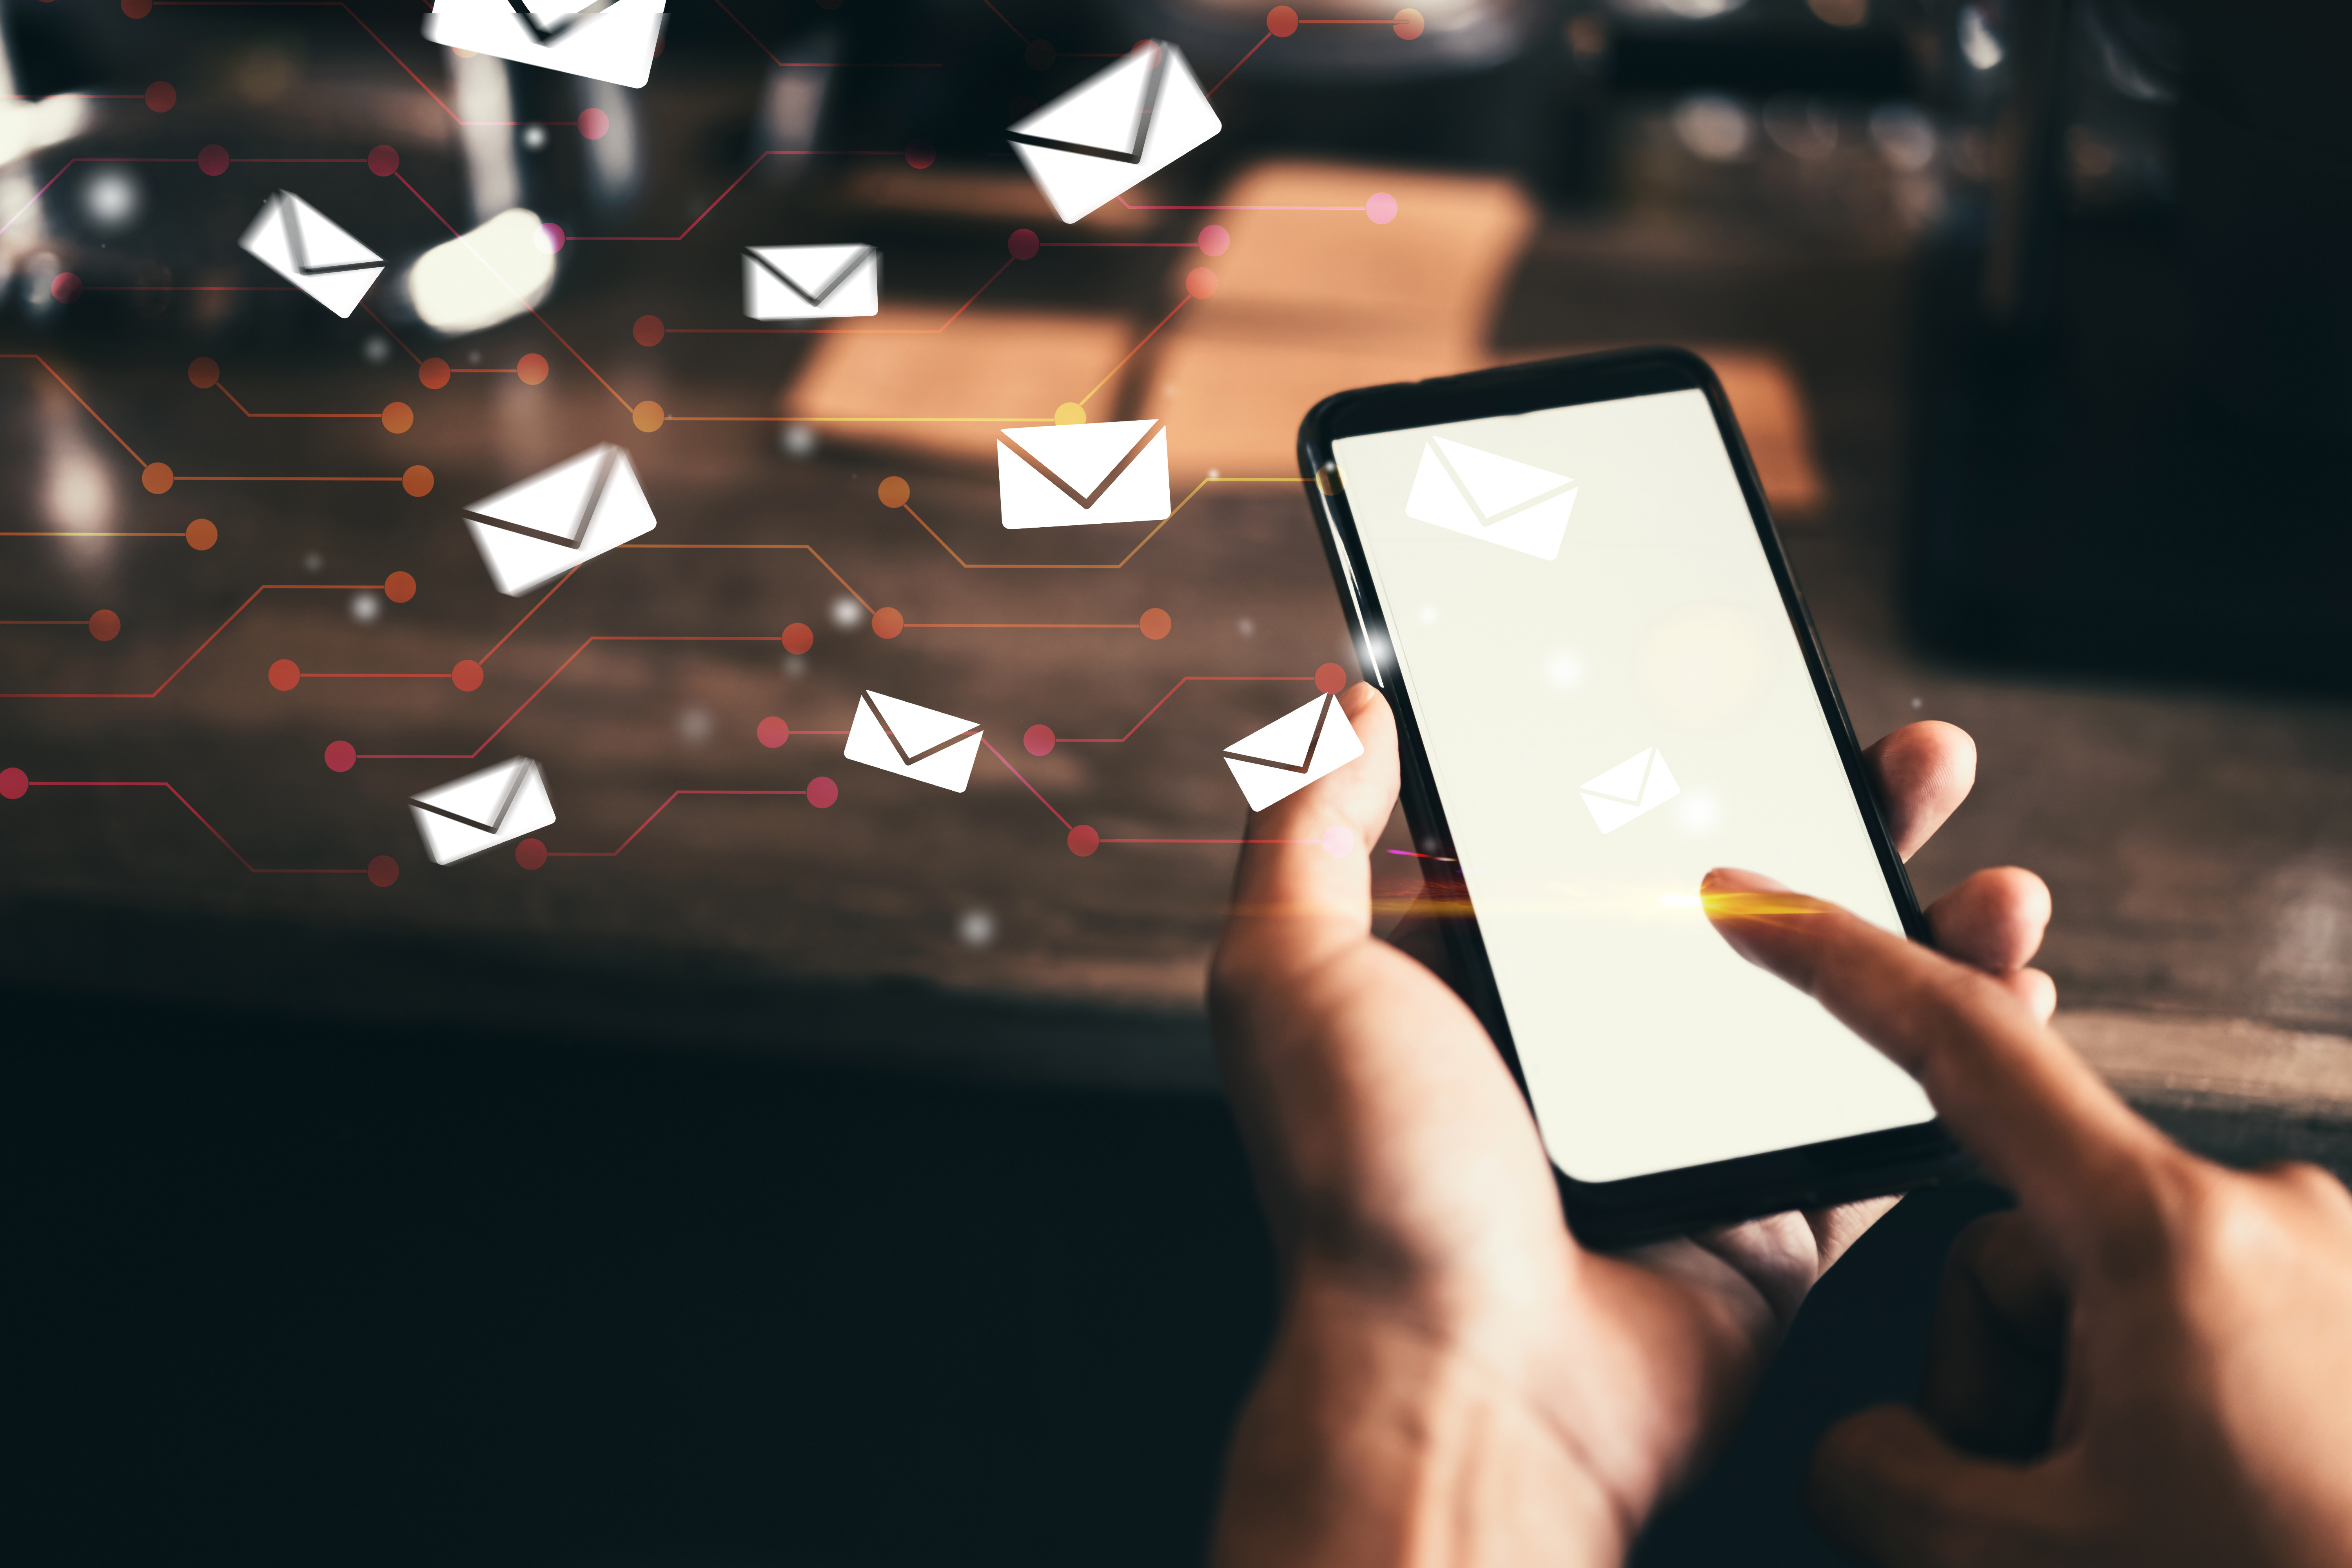 Too Many Returns? How to Utilize SMS to Gather Reviews & Improve the Buying Experience